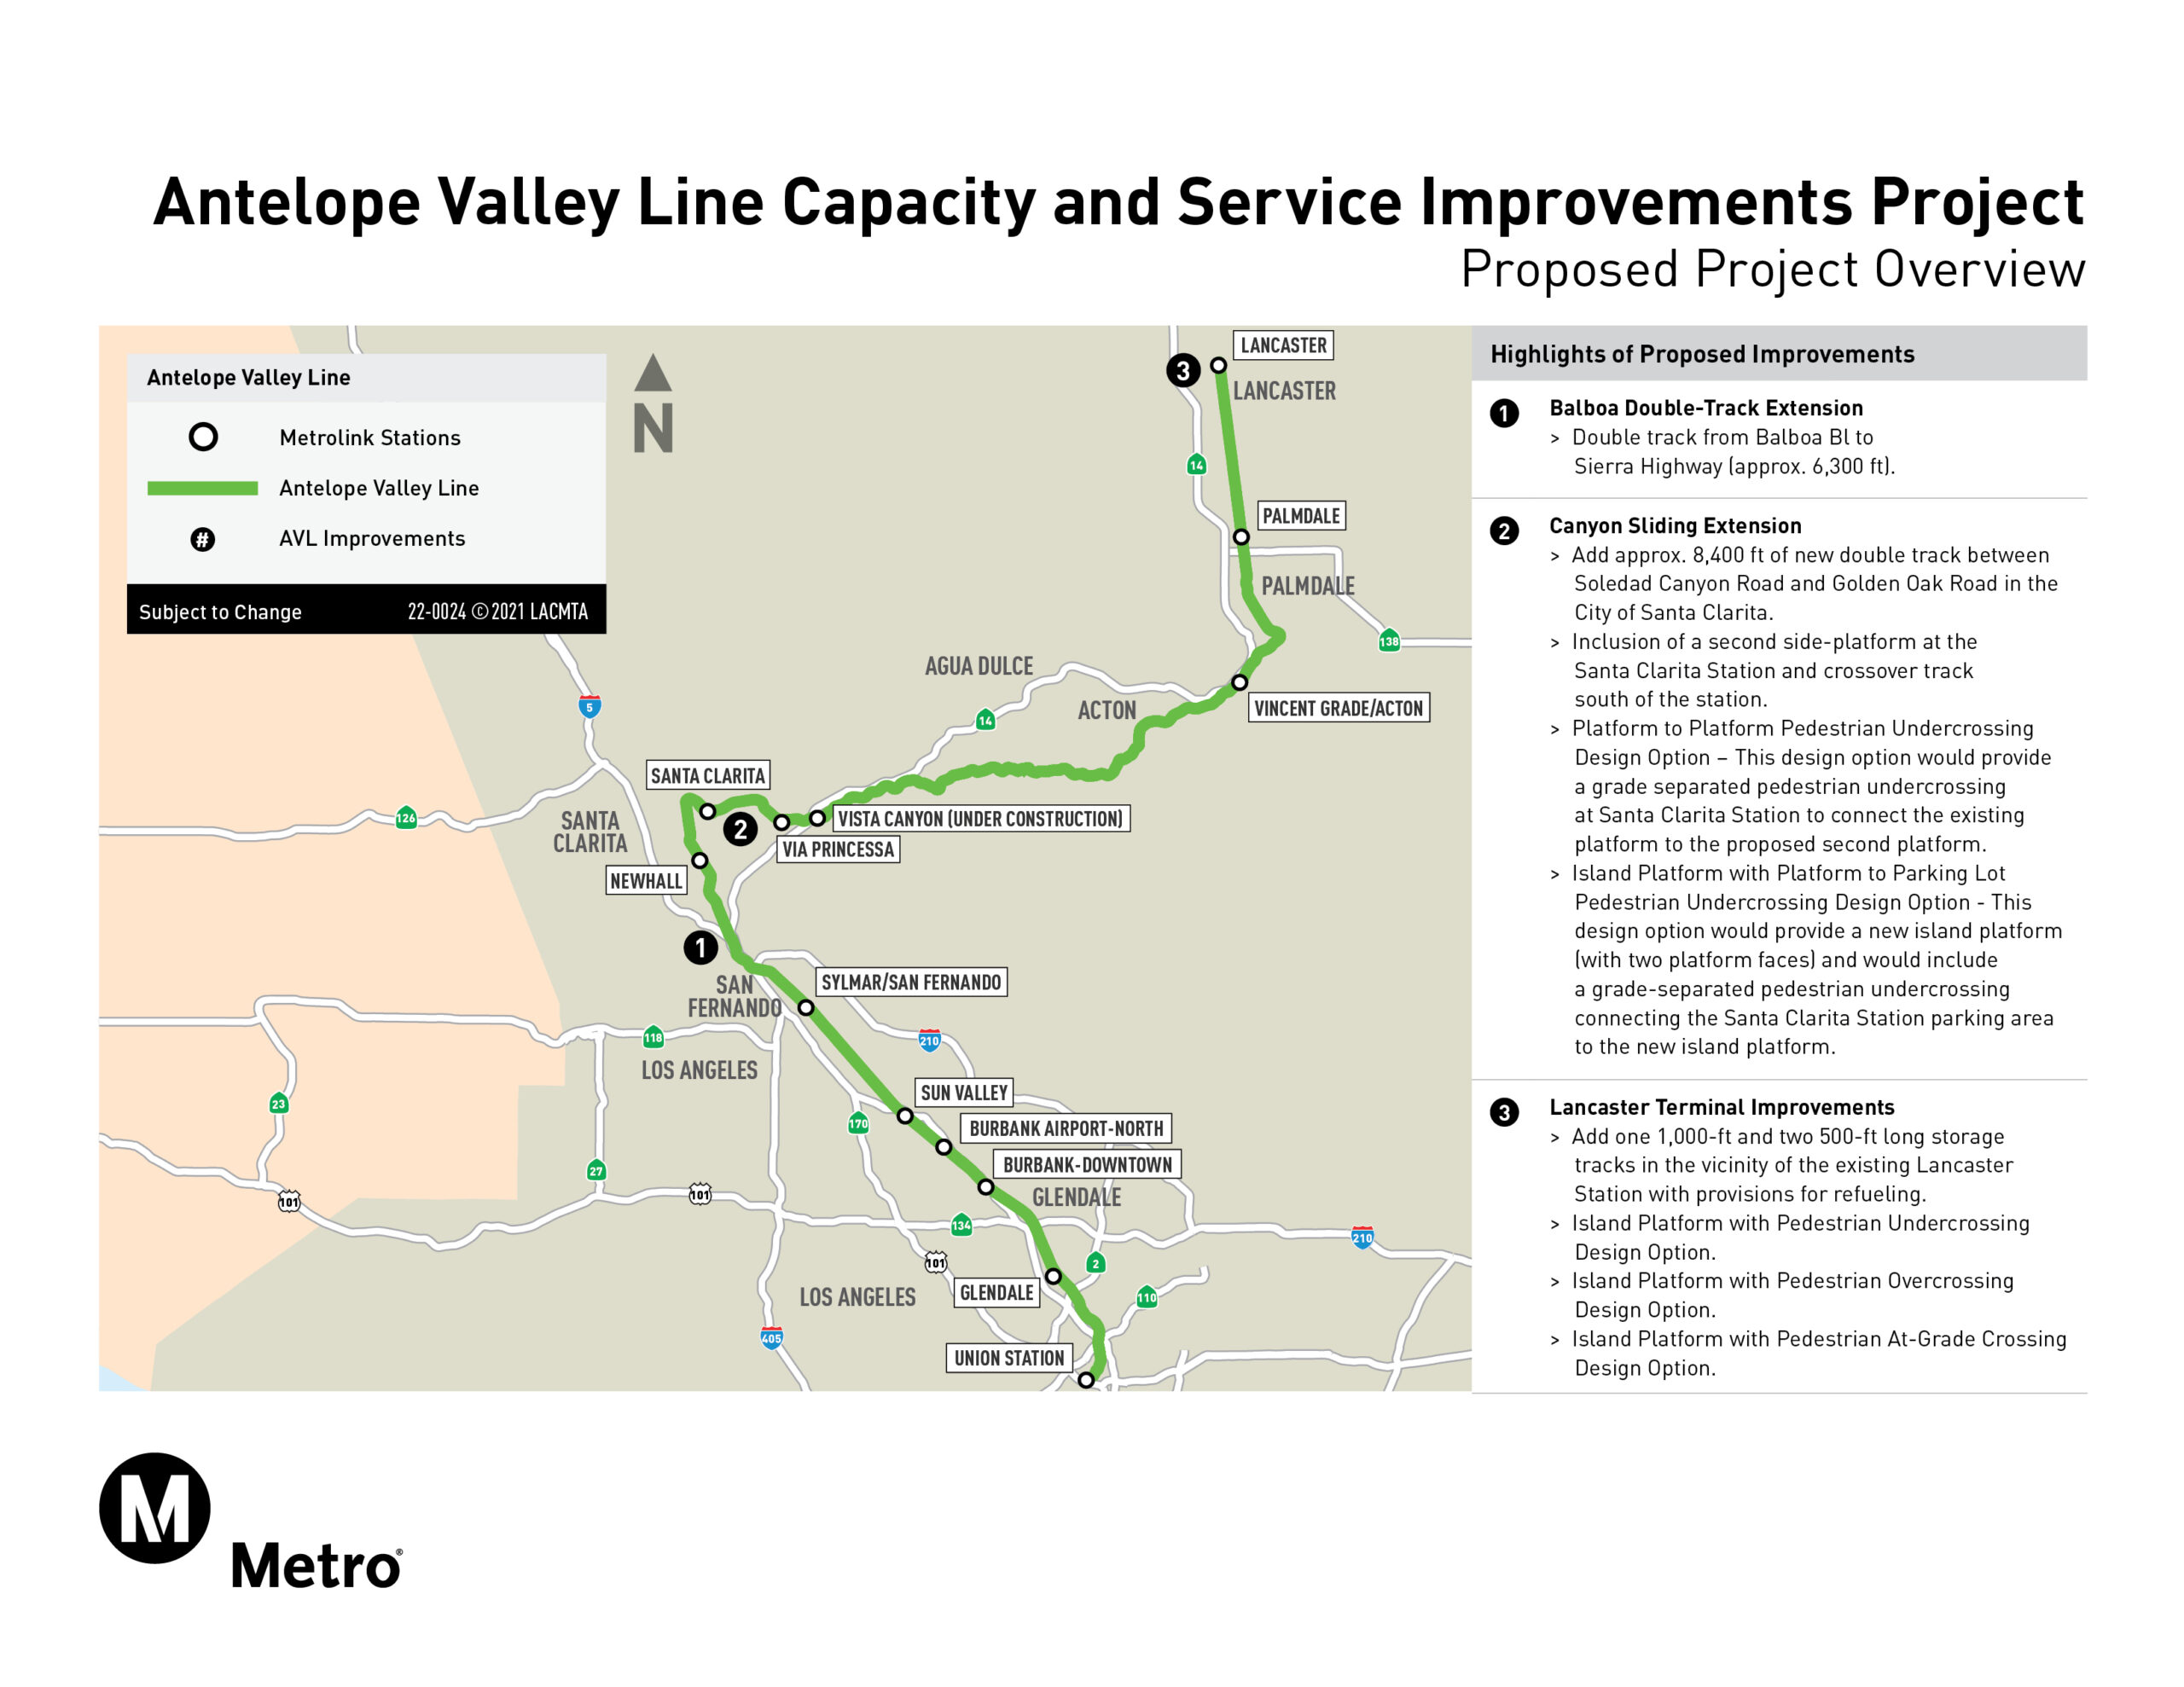 Antelope Valley Line Capacity and Service Improvements Program Project Map